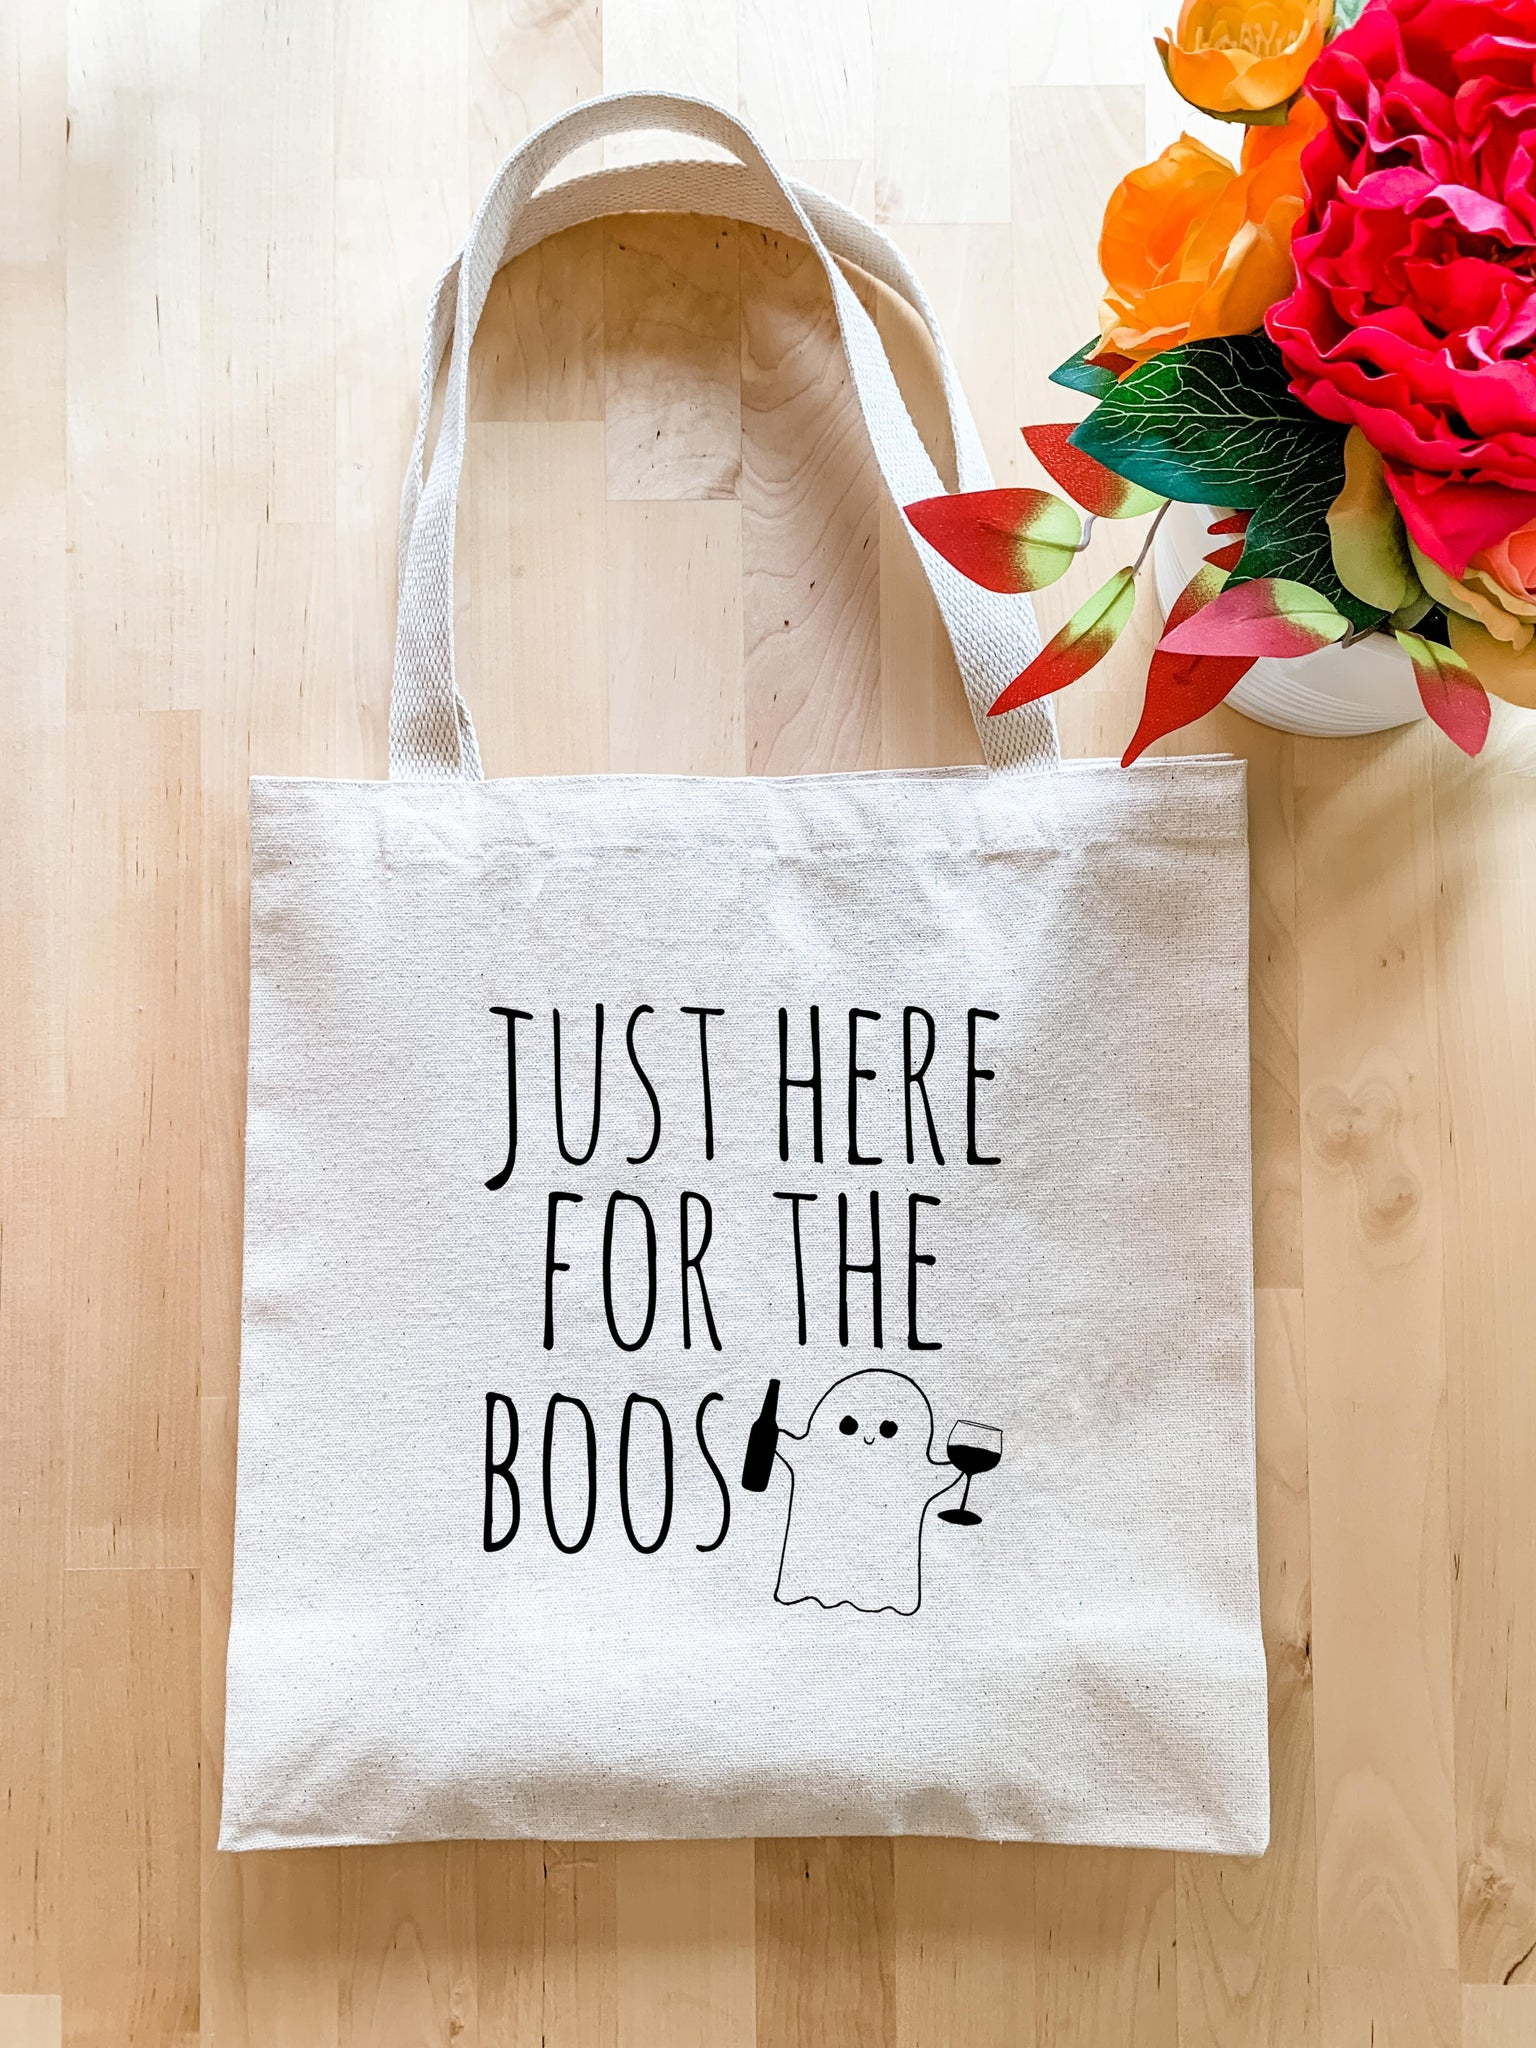 Just Here For The Boos - Tote Bag - MoonlightMakers